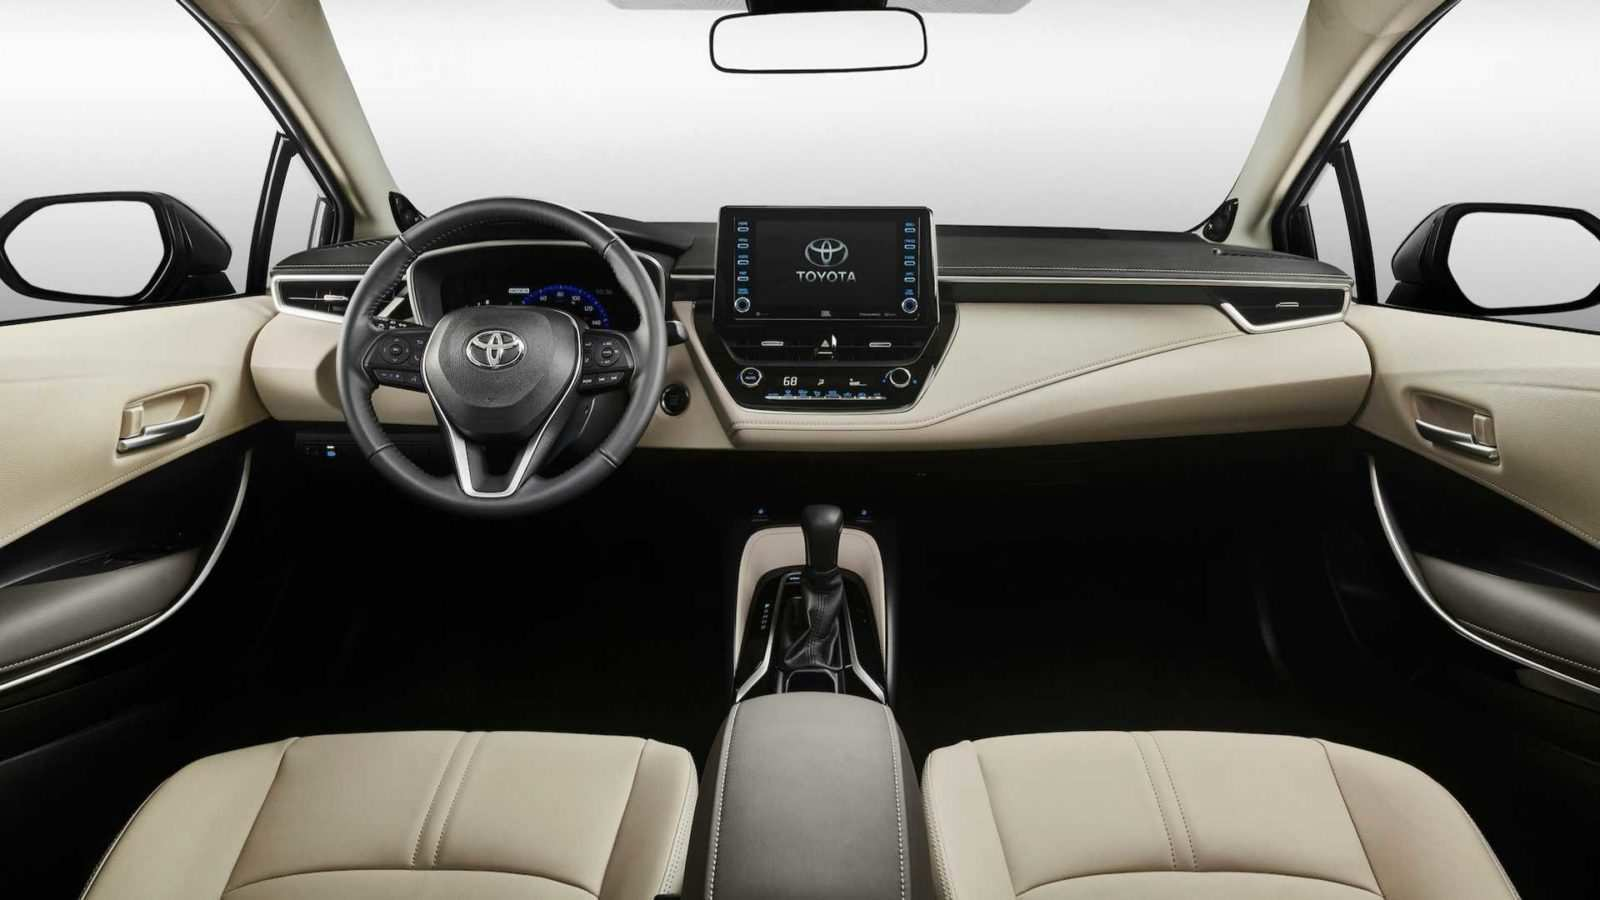 54 New Toyota Corolla 2020 Model In Pakistan New Model and Performance